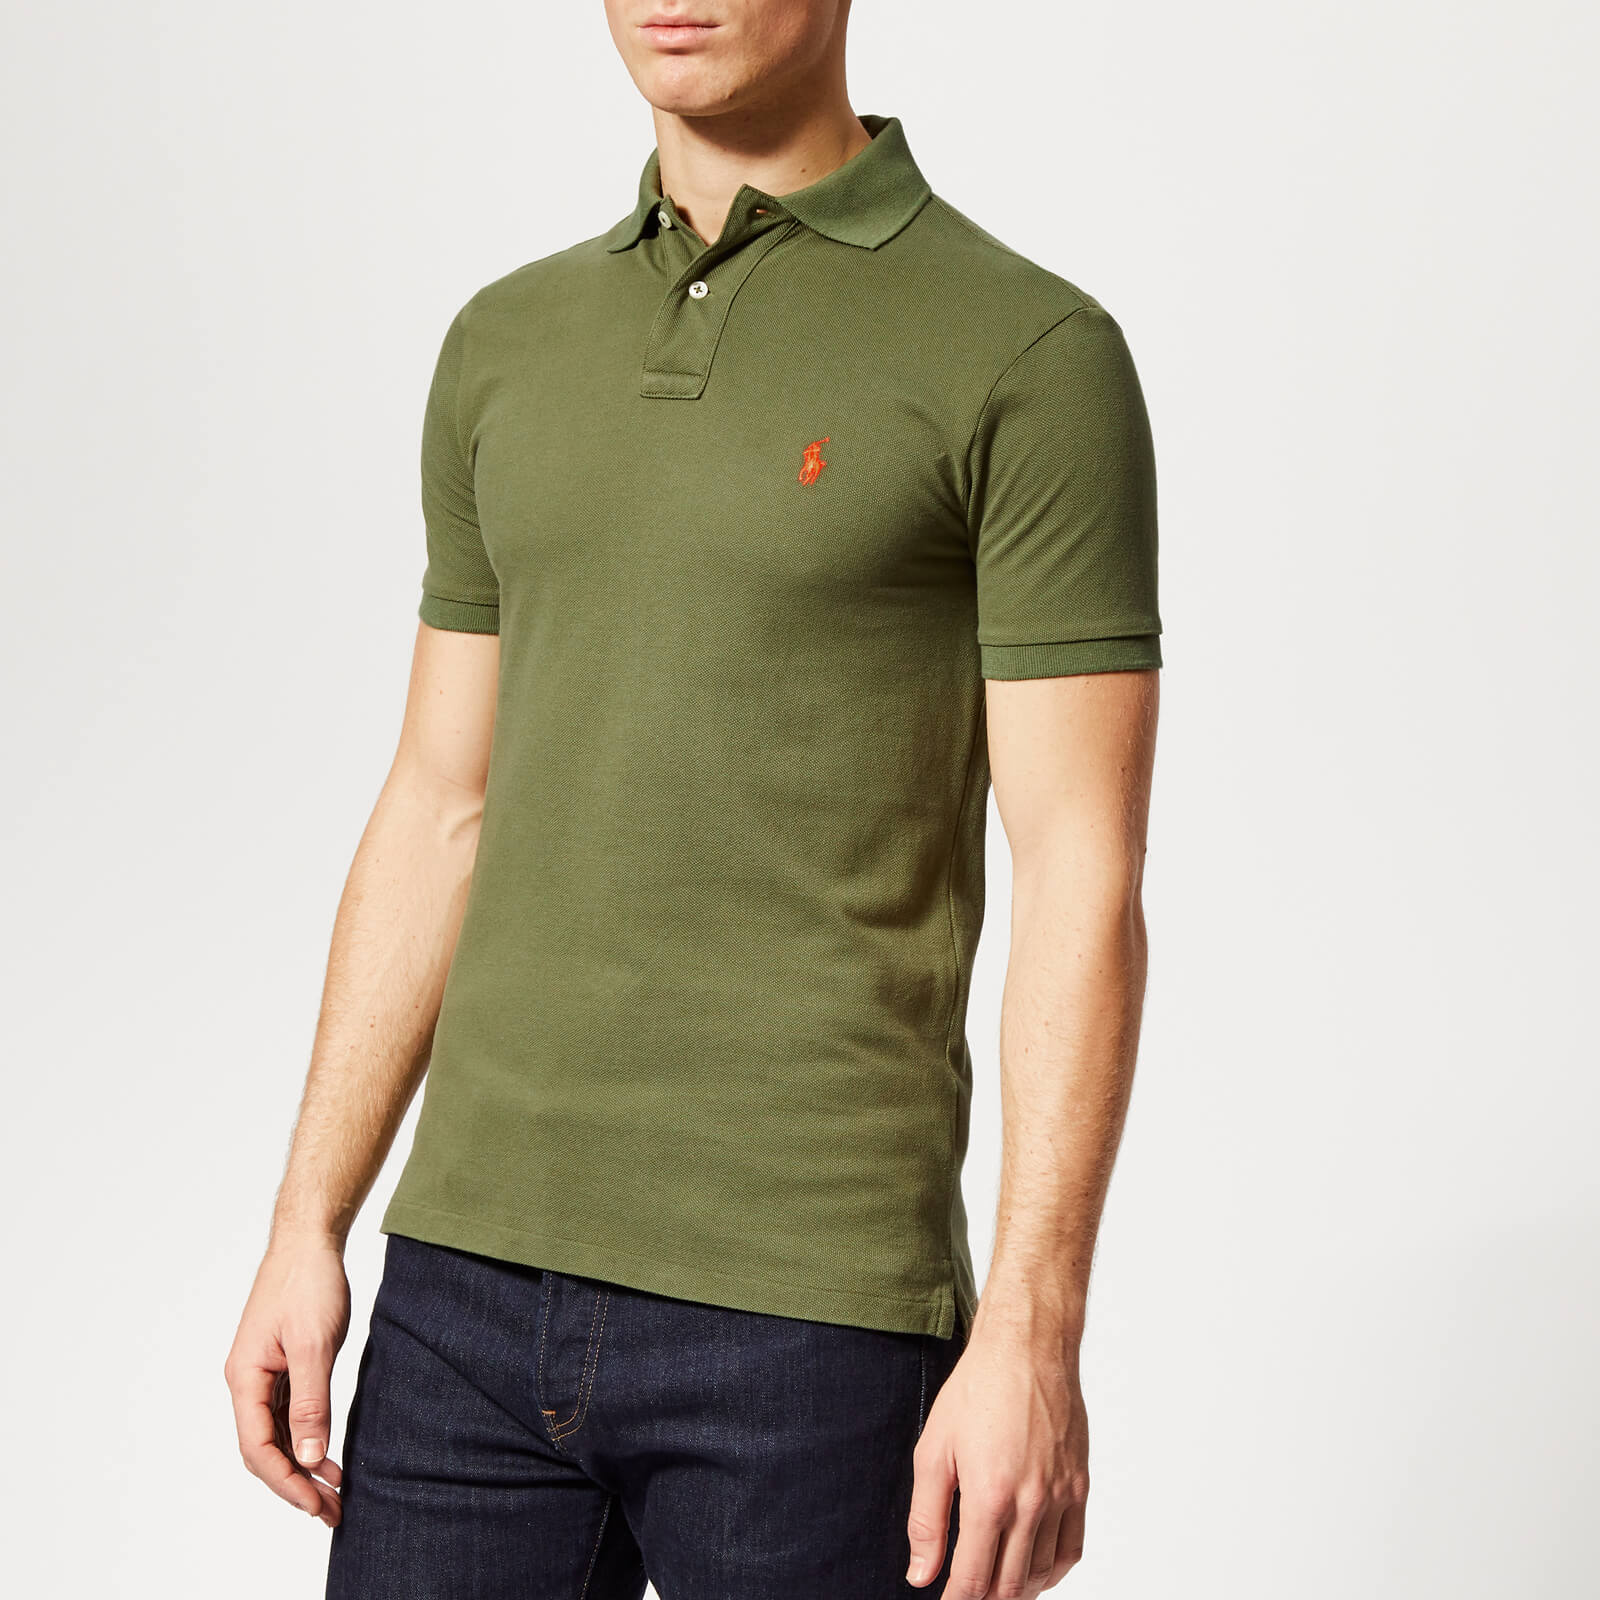 357268653 Polo Ralph Lauren Men's Slim Fit Mesh Polo Shirt - Supply Olive - Free UK  Delivery over £50